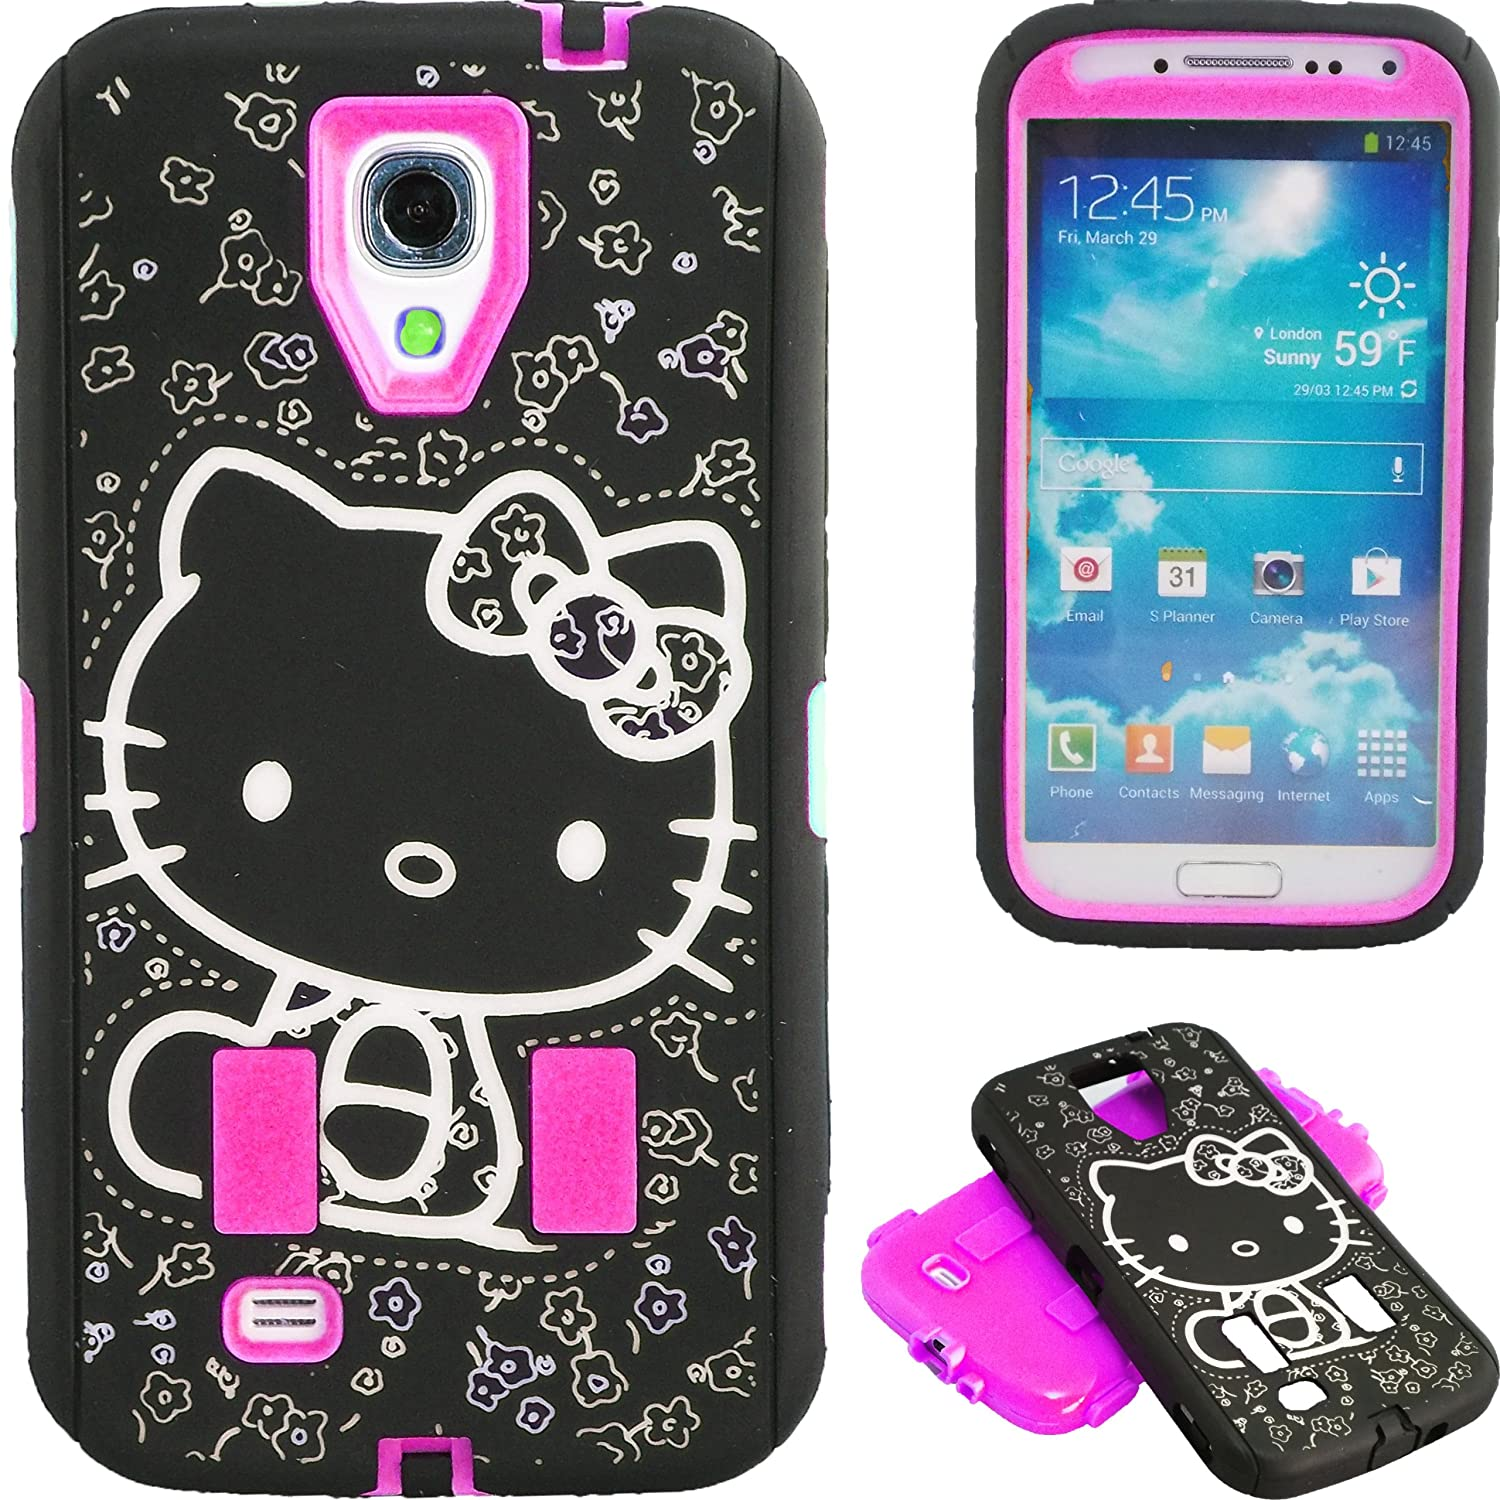 New Cute Hot Pink & Black Hello Kitty Hybrid Case for Samsung Galaxy S4 i9500 + Free Screen Protector & Stylus